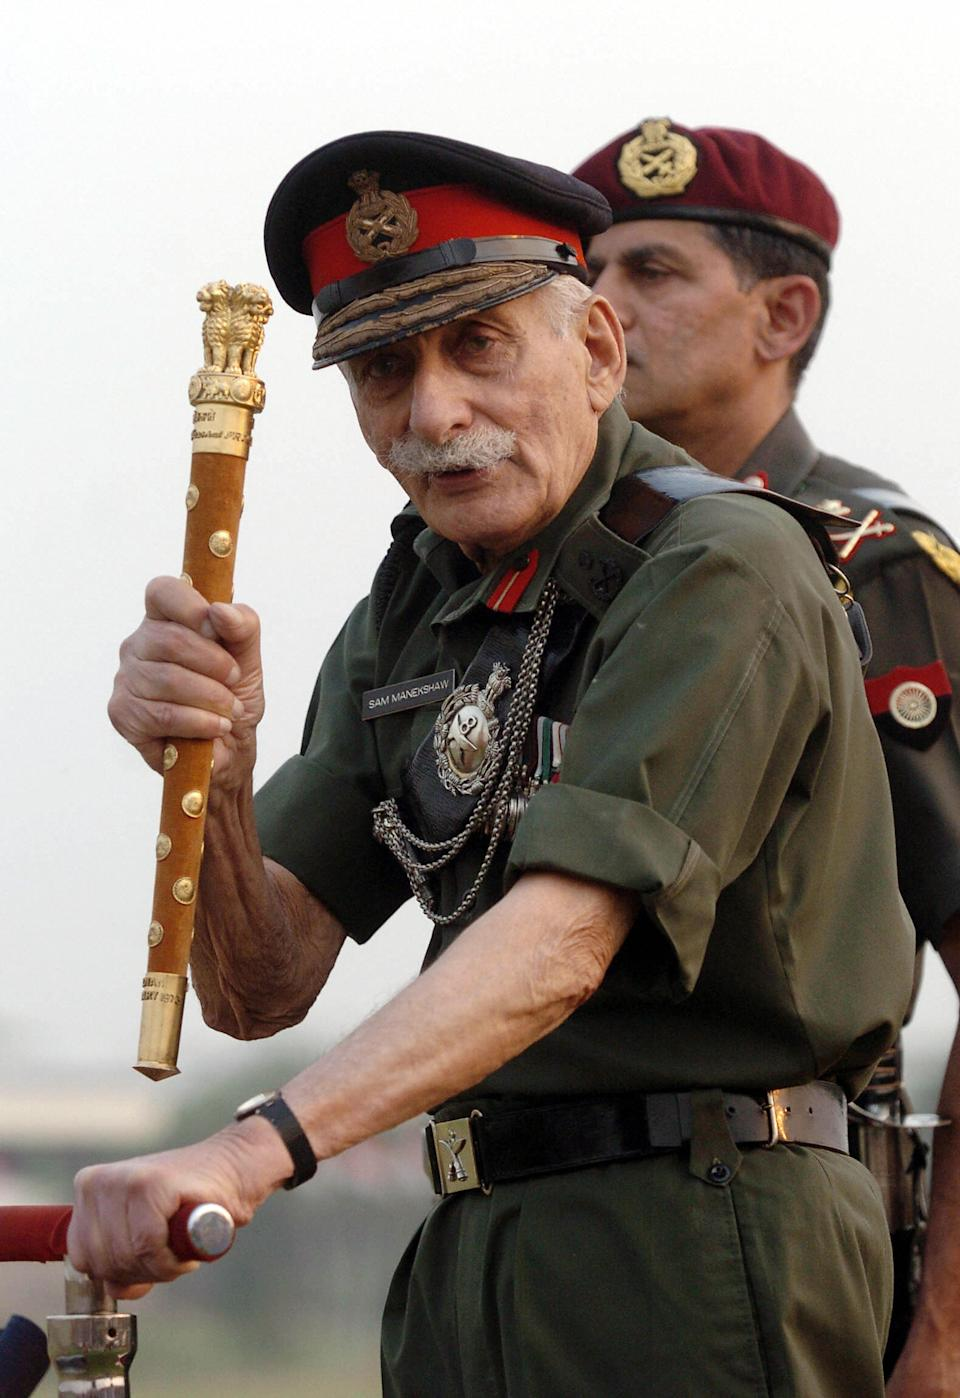 Field Marshal Sam Manekshaw was one of the most gallant army officers in India. A recipient of Padma Vibhushan, Padma Bhushan and Military Cross, Sam Manekshaw served as the 8th Chief of the Army Staff. Manekshaw fought for the British Indian Army in World War II and was awarded the Military Cross for his gallantry. Manekshaw led the Indian forces against Pakistan in the Indo-Pakistan War of 1971. He is the nation's only soldier to have ever held the Field Marshall's rank.